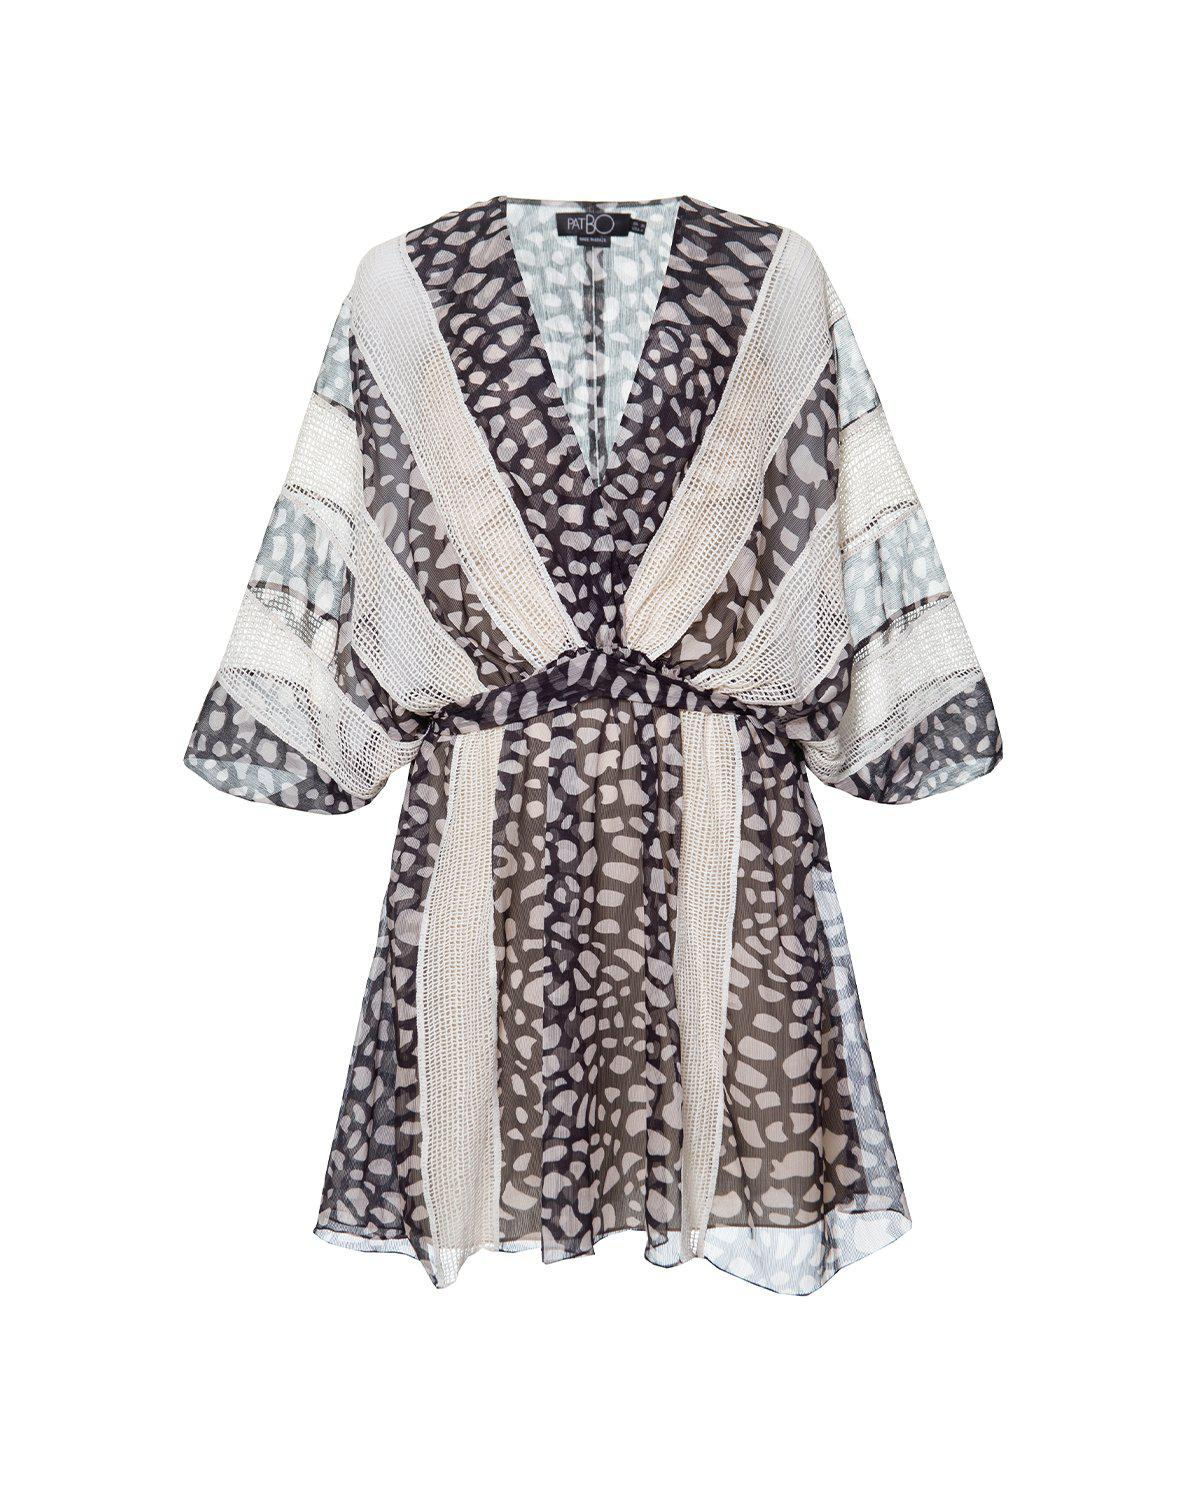 SPOTTED LACE TRIM COVERUP 1